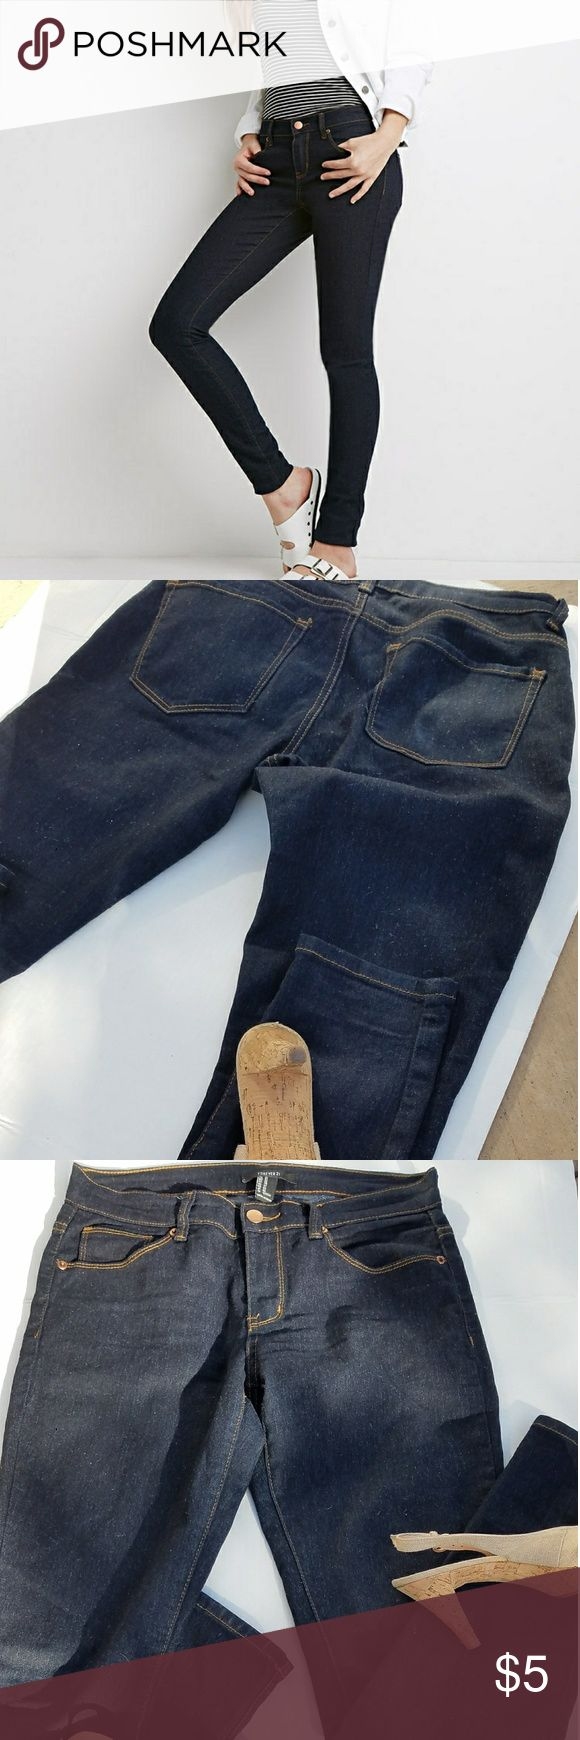 Forever21 dark blue skinny jeans Snug fit jeans for going out or for causel friday As seen in pictures this jeans has no rips or tears there is small fuzzing but no defects Forever 21 Jeans Skinny